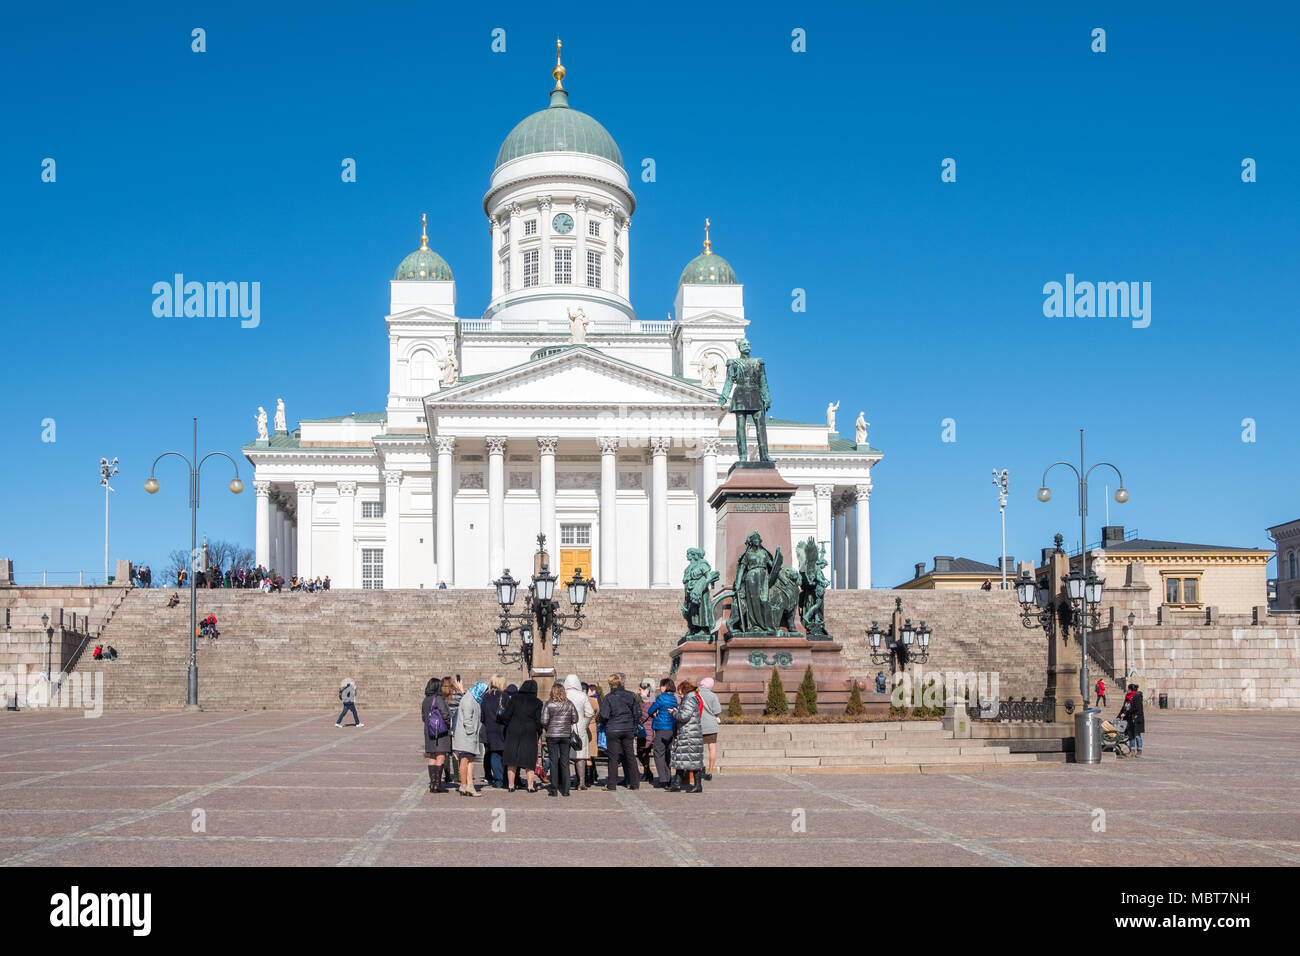 Helsinki Cathedral on a sunny day in April. The cathedral was completed in 1852 and seats 1300 people. - Stock Image